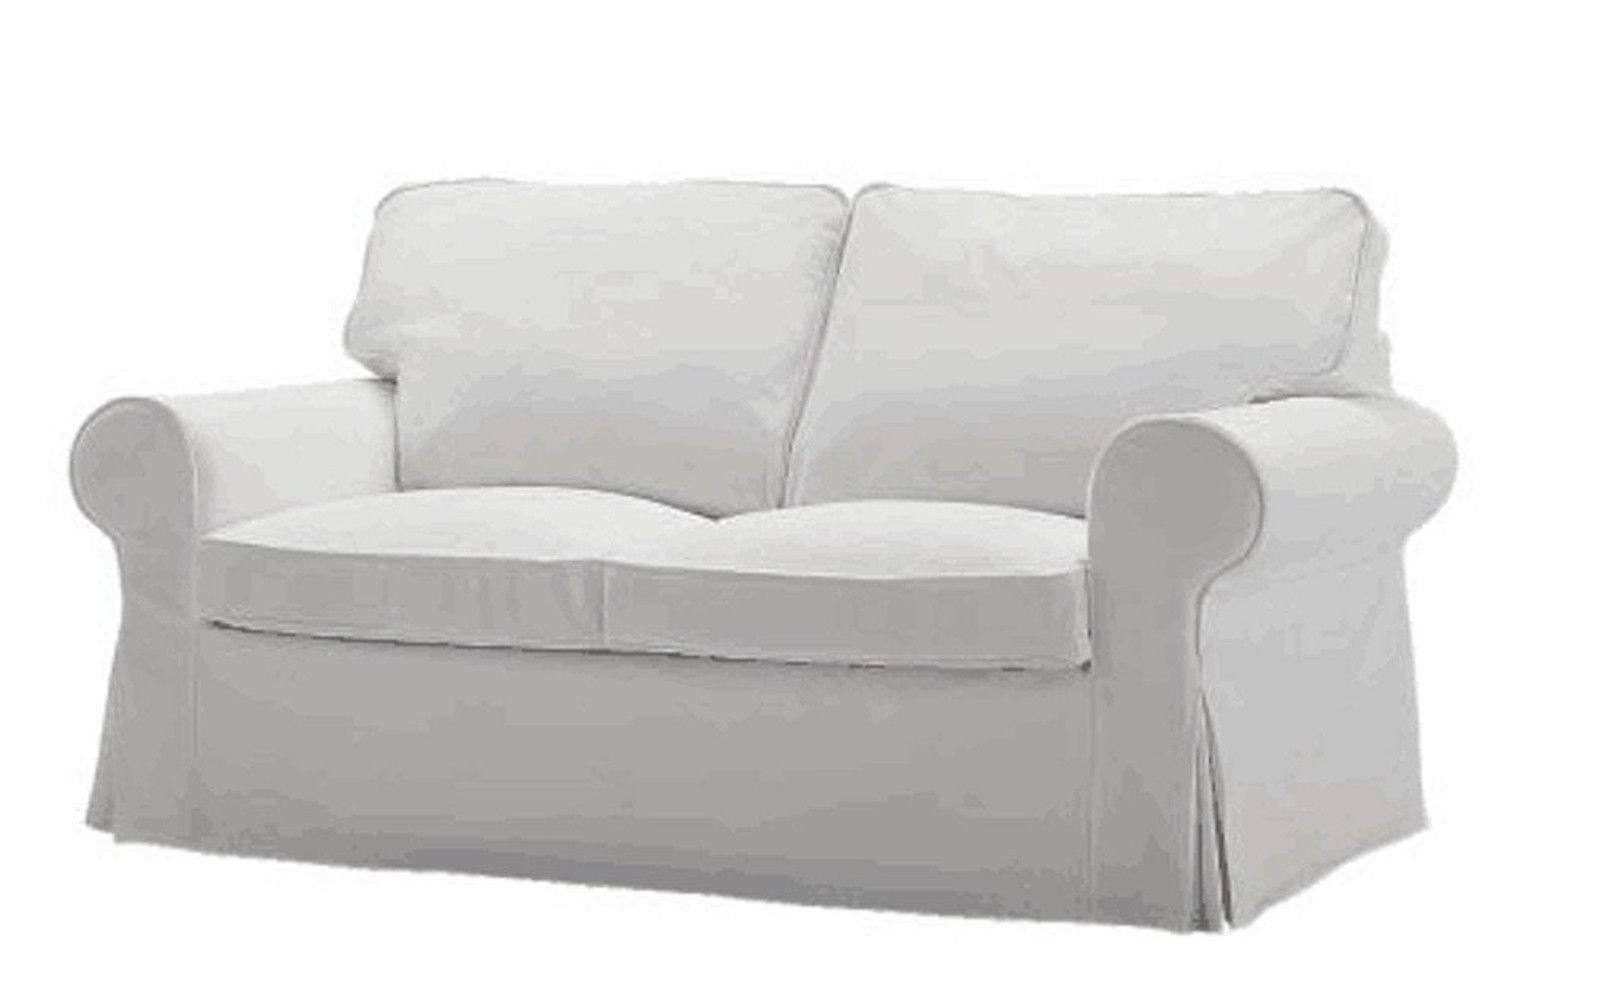 two seater sofa bed cover acieona reclining with drop down table ikea ektorp this